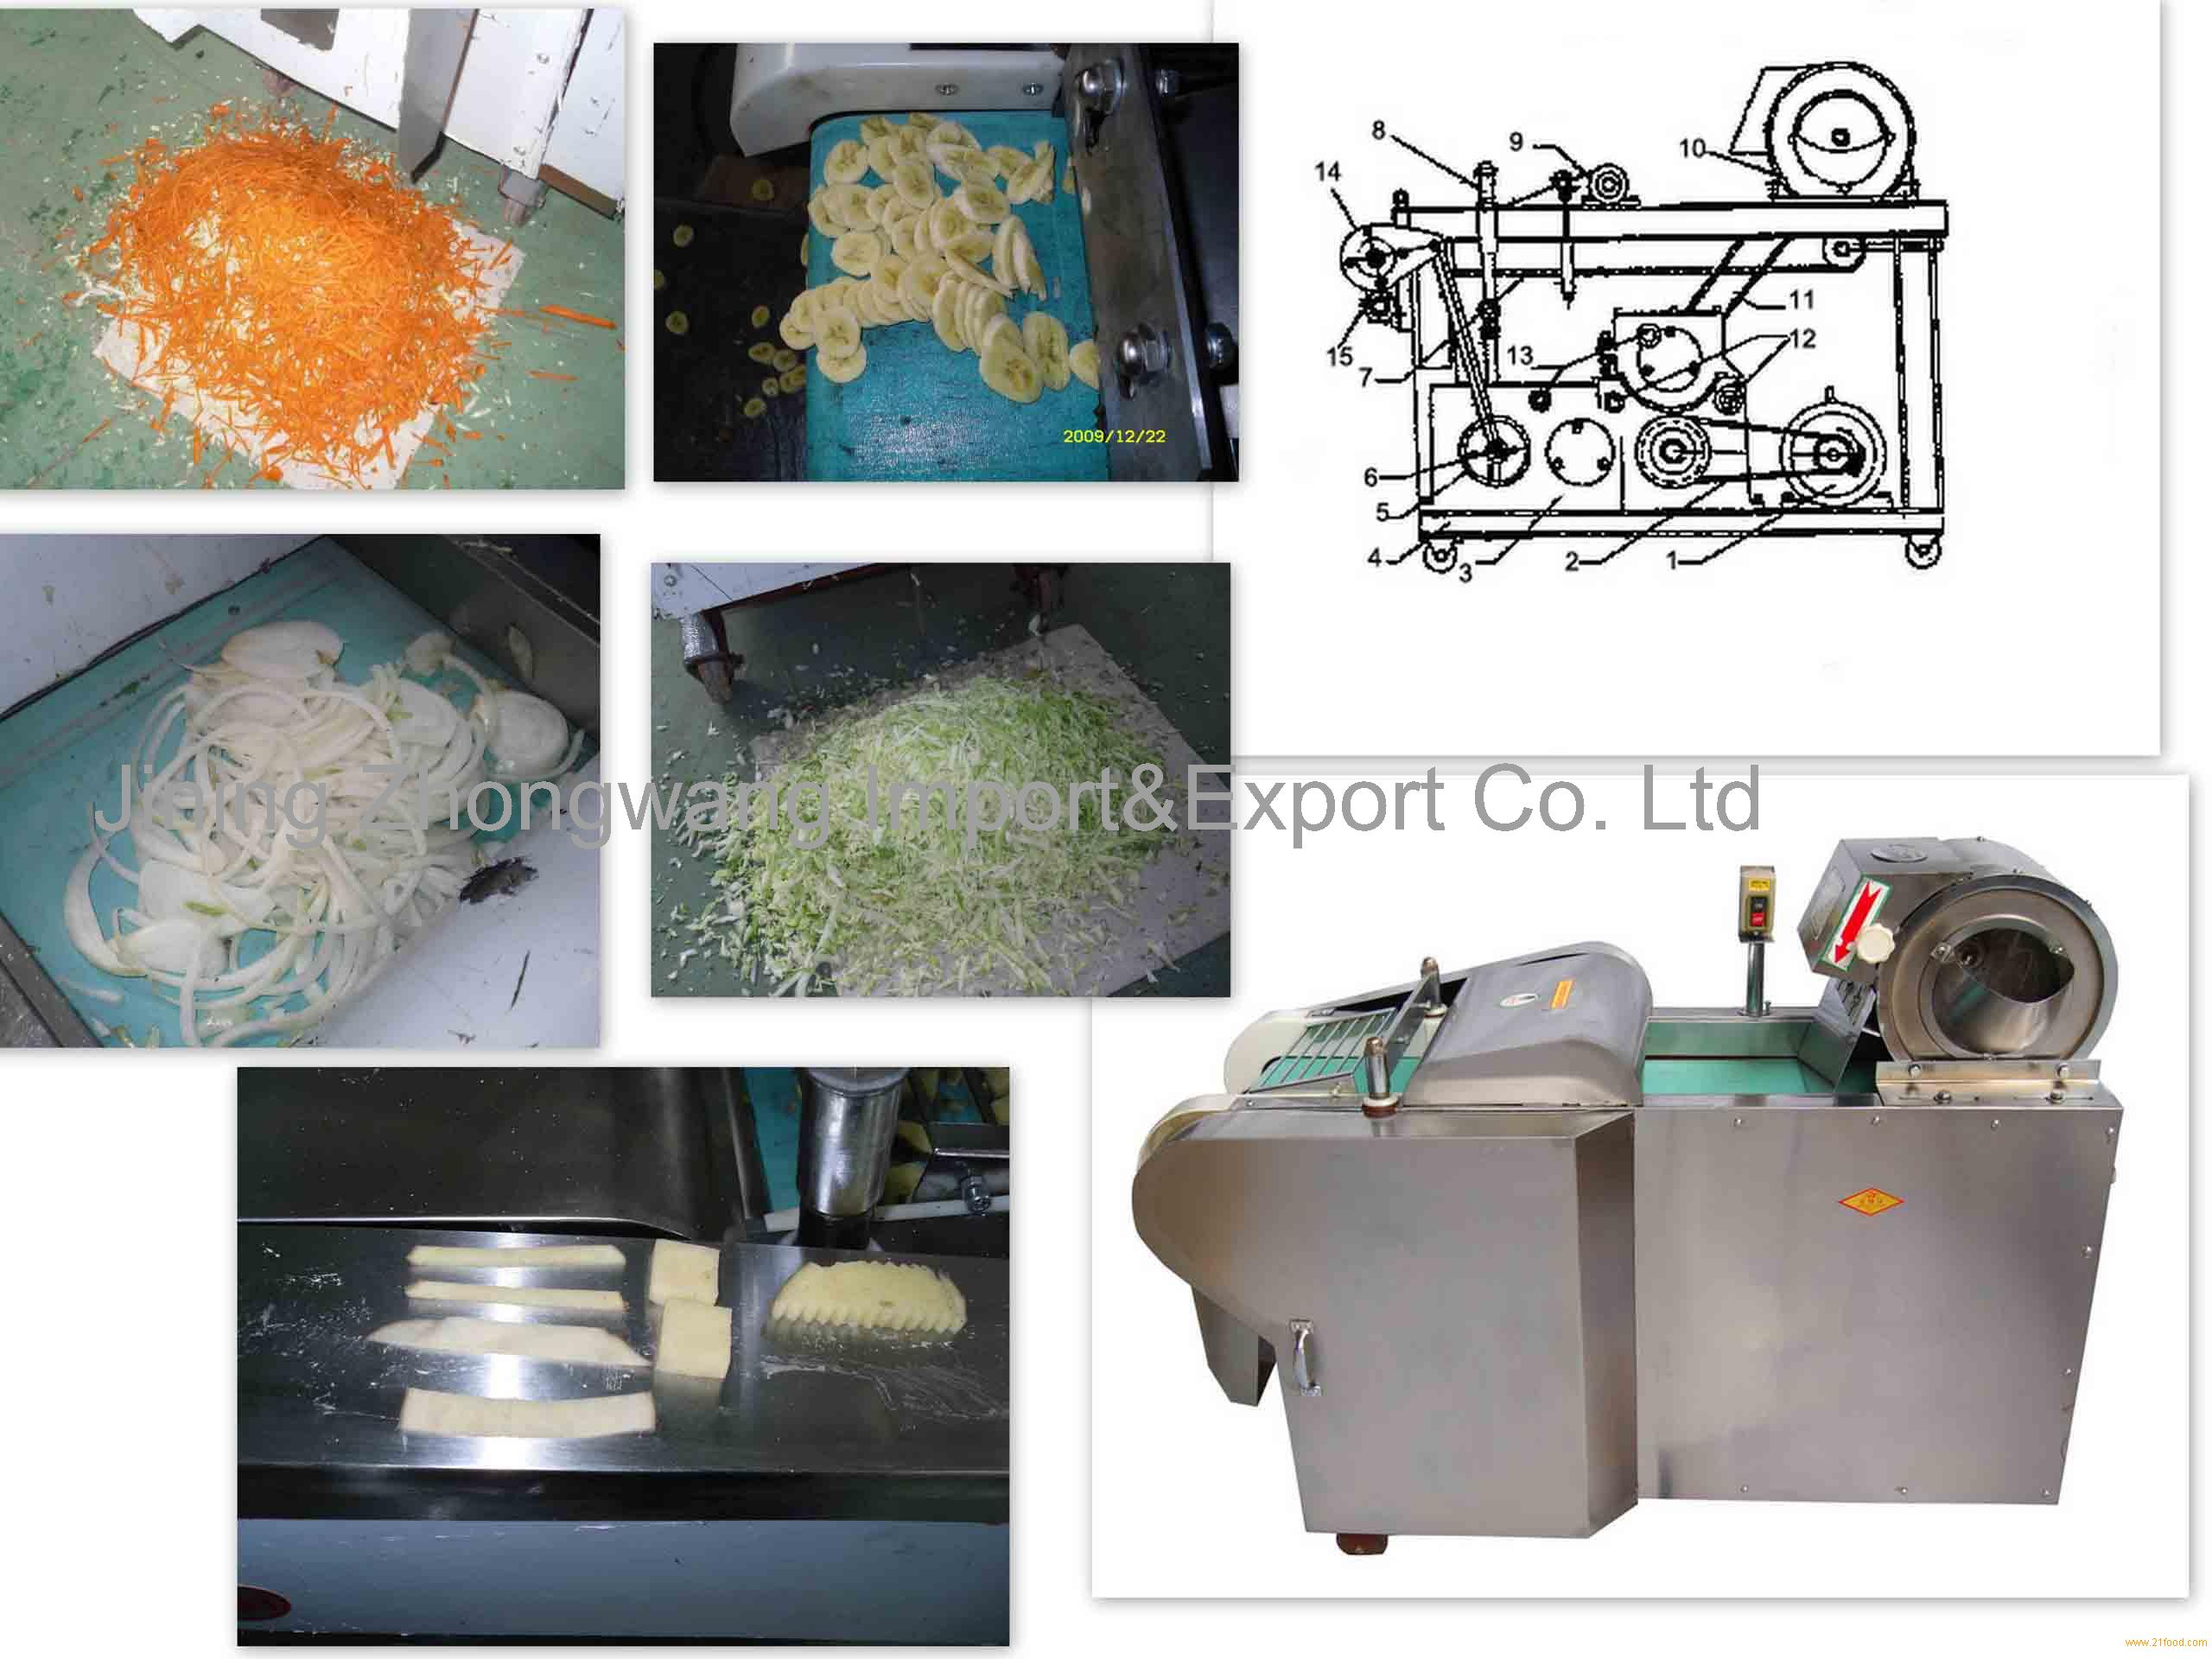 plantain slicing machine